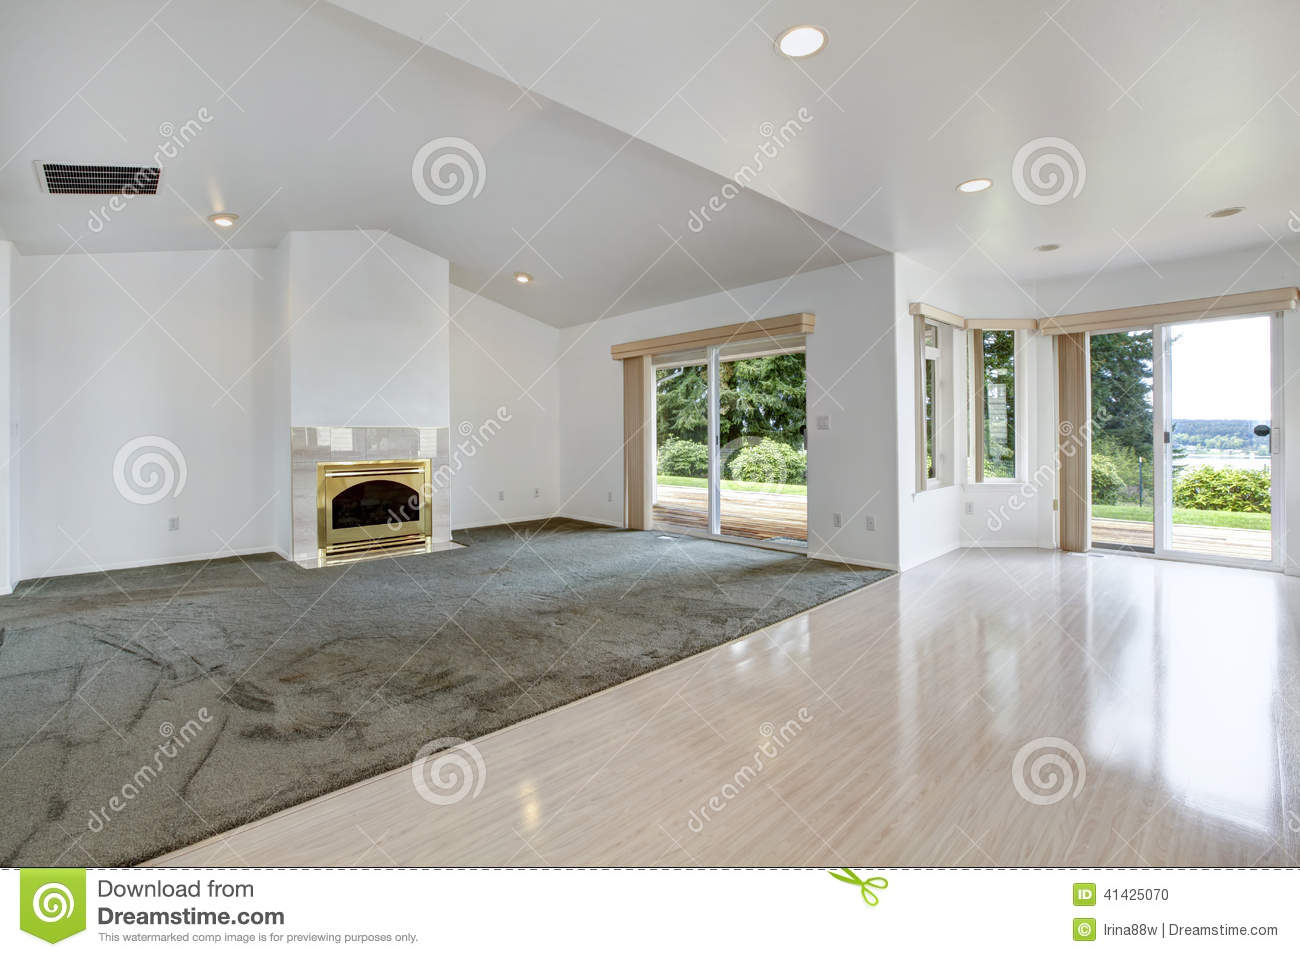 House interior. Empty living room with fireplace and walkout dec